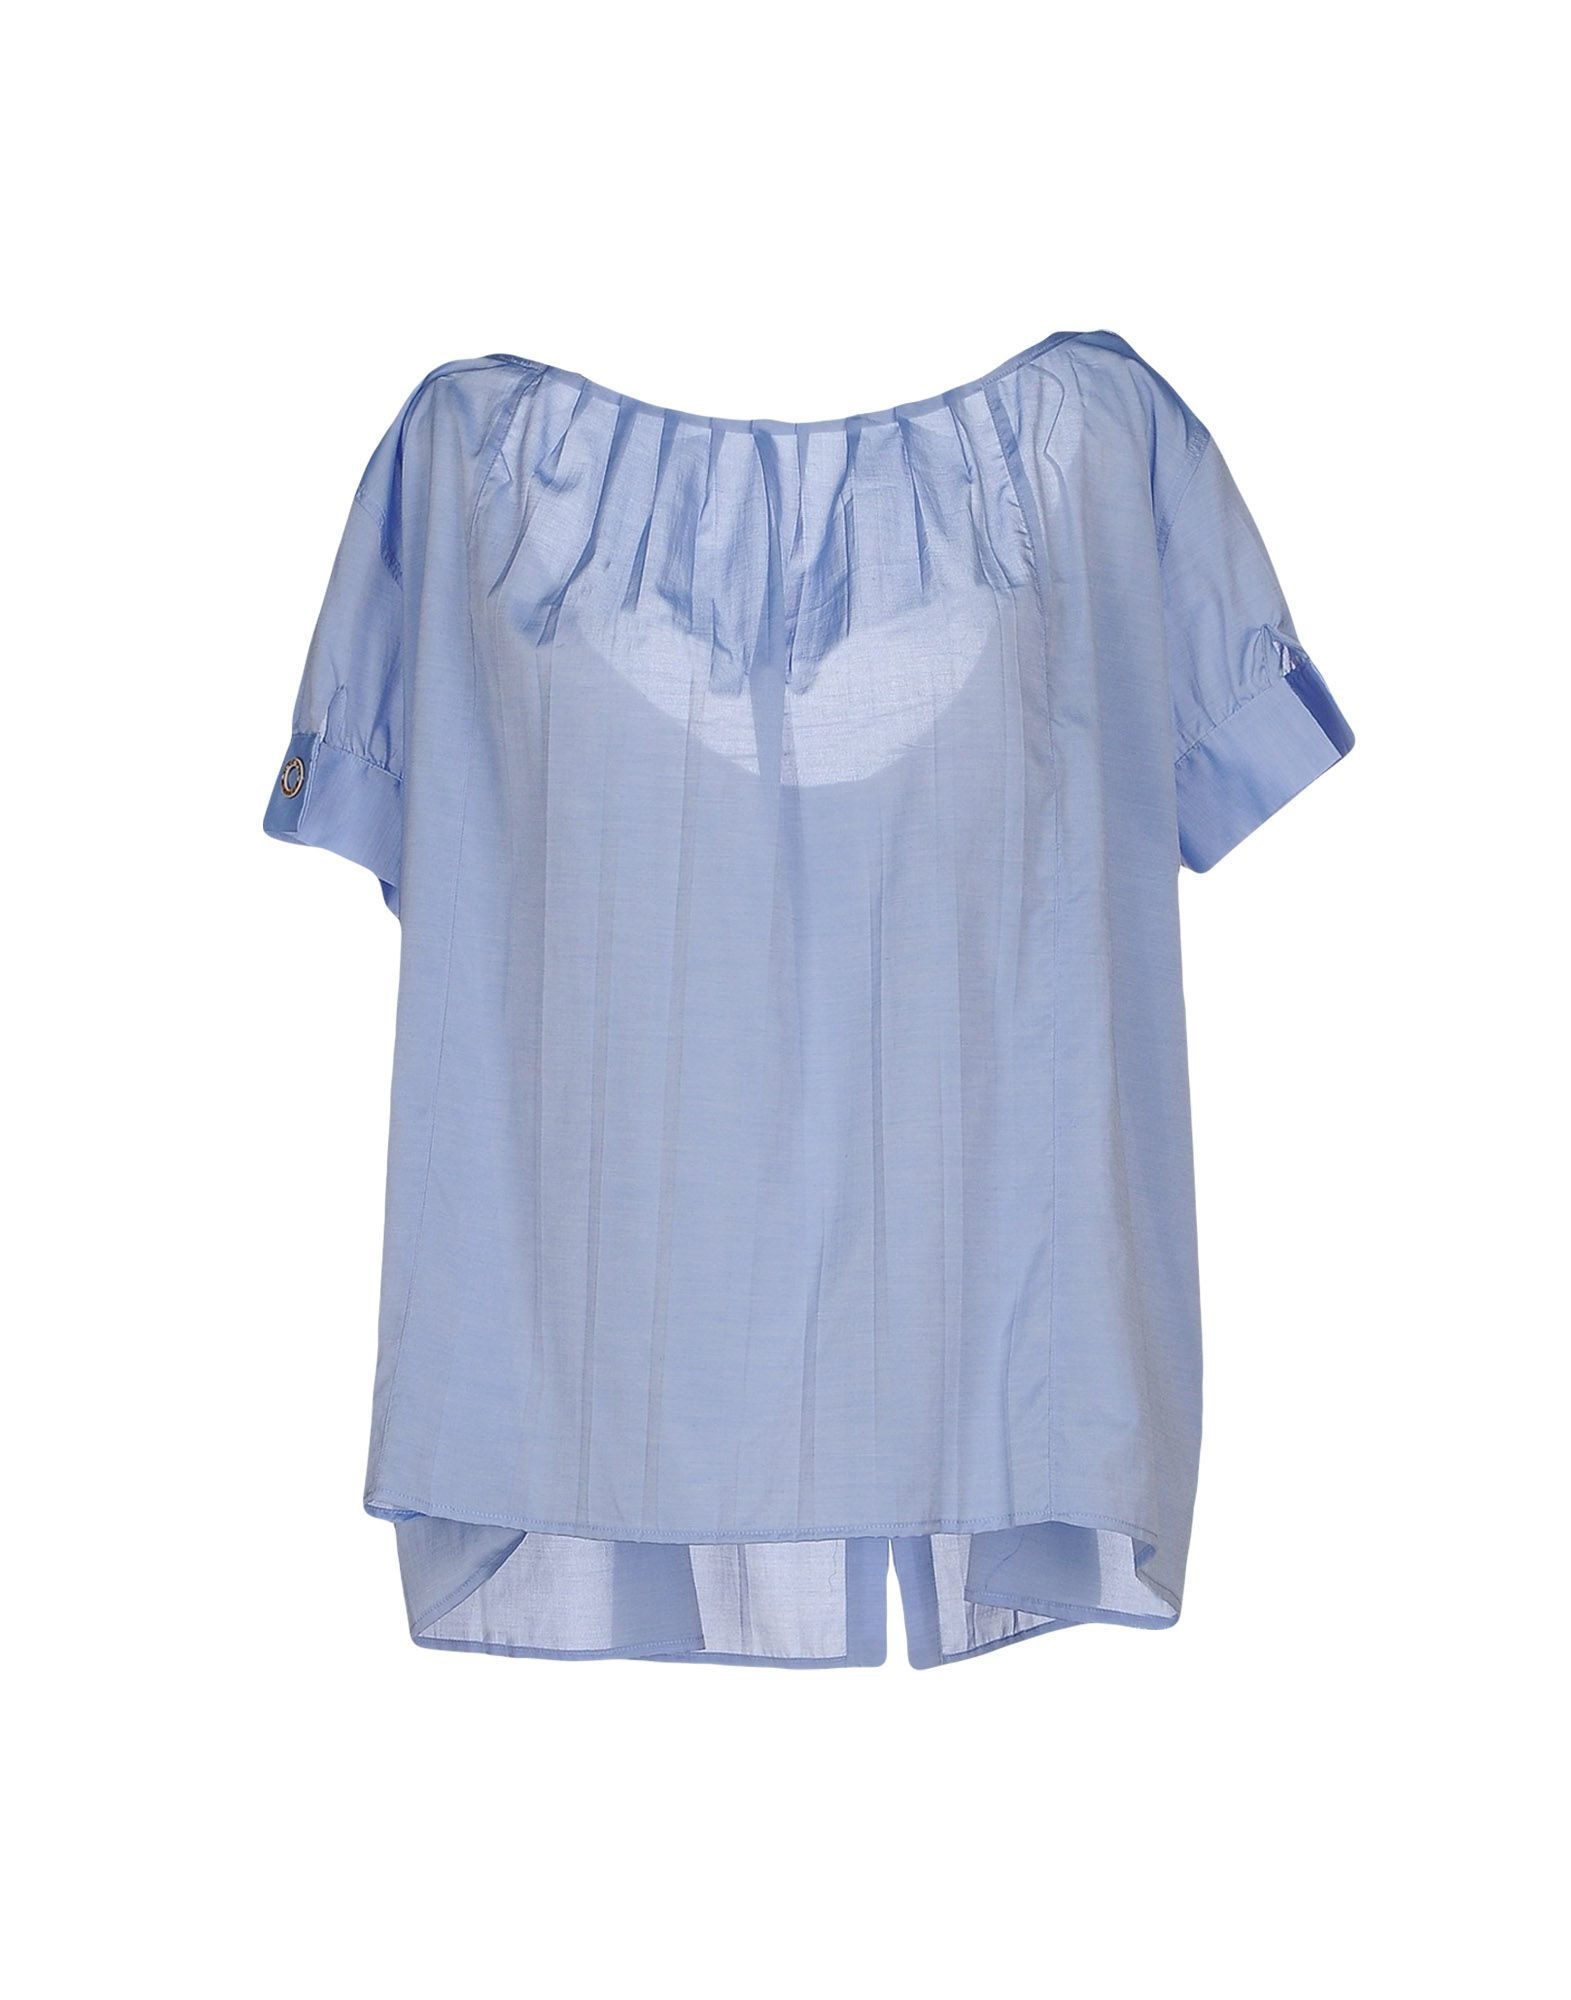 Manila grace shirt in blue lyst for Thrilla in manila shirt under armour